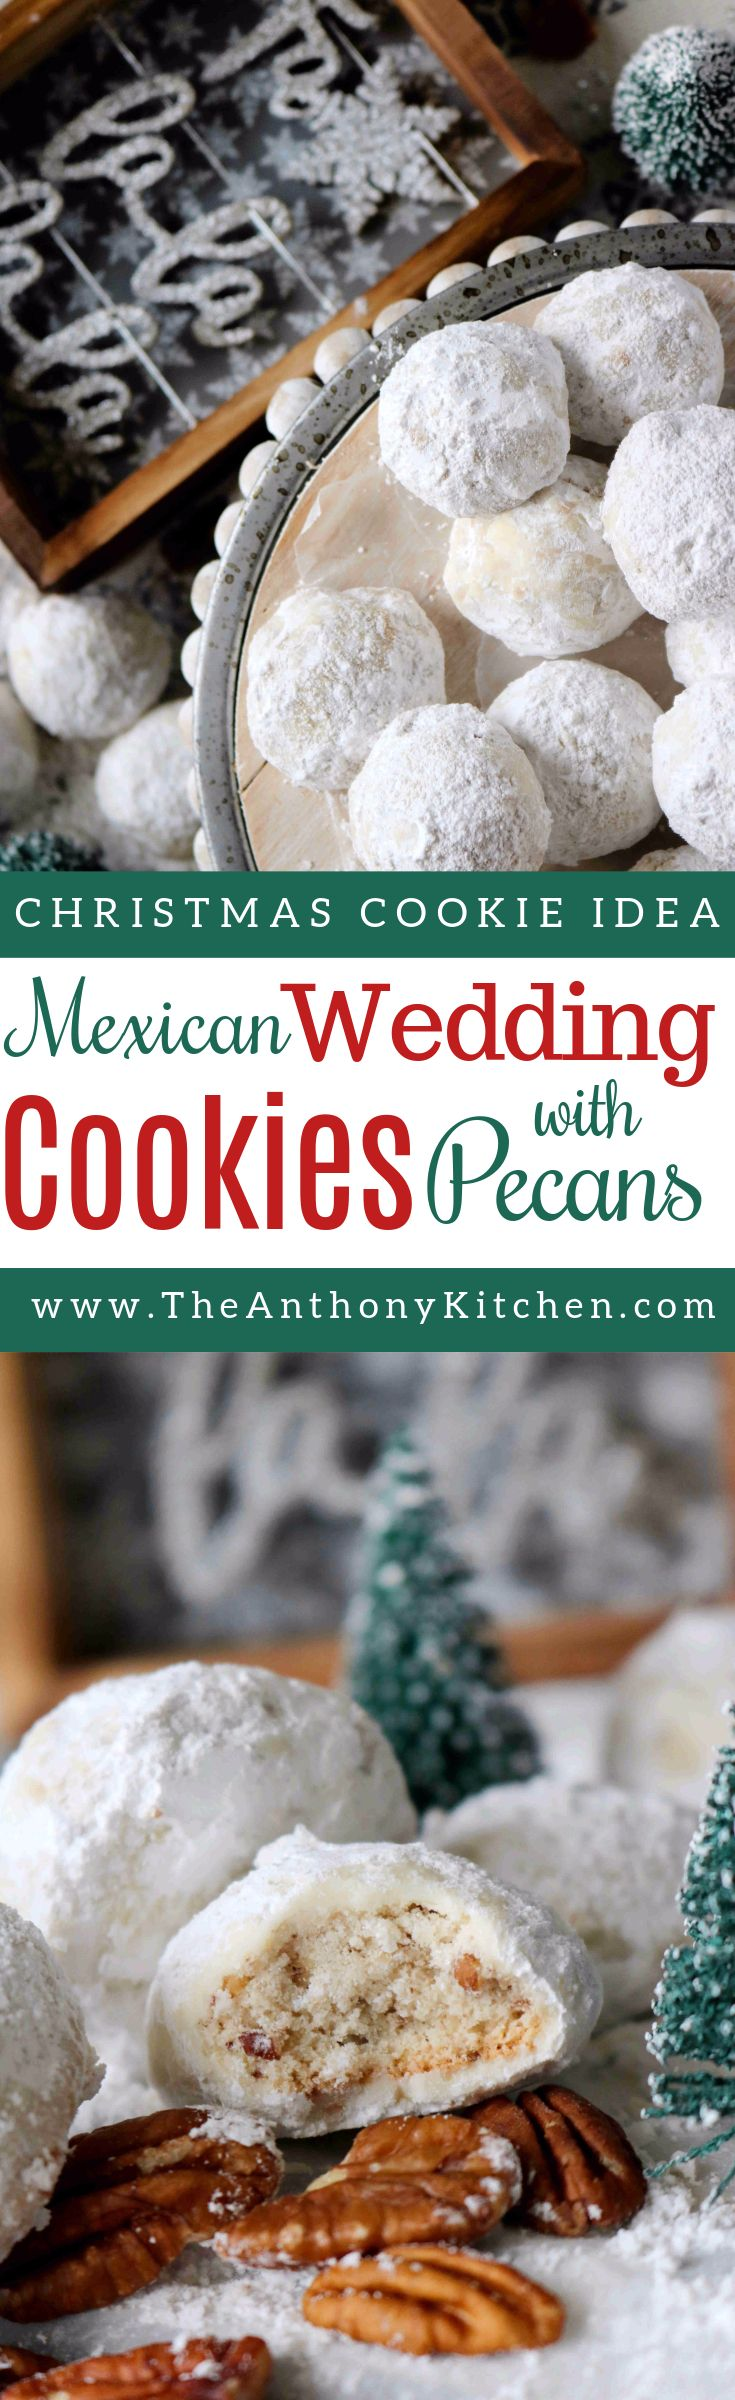 A recipe for Mexican Wedding Cookies (also know as snowball cookies), a buttery, melt-in-your-mouth cookie rolled in powdered sugar